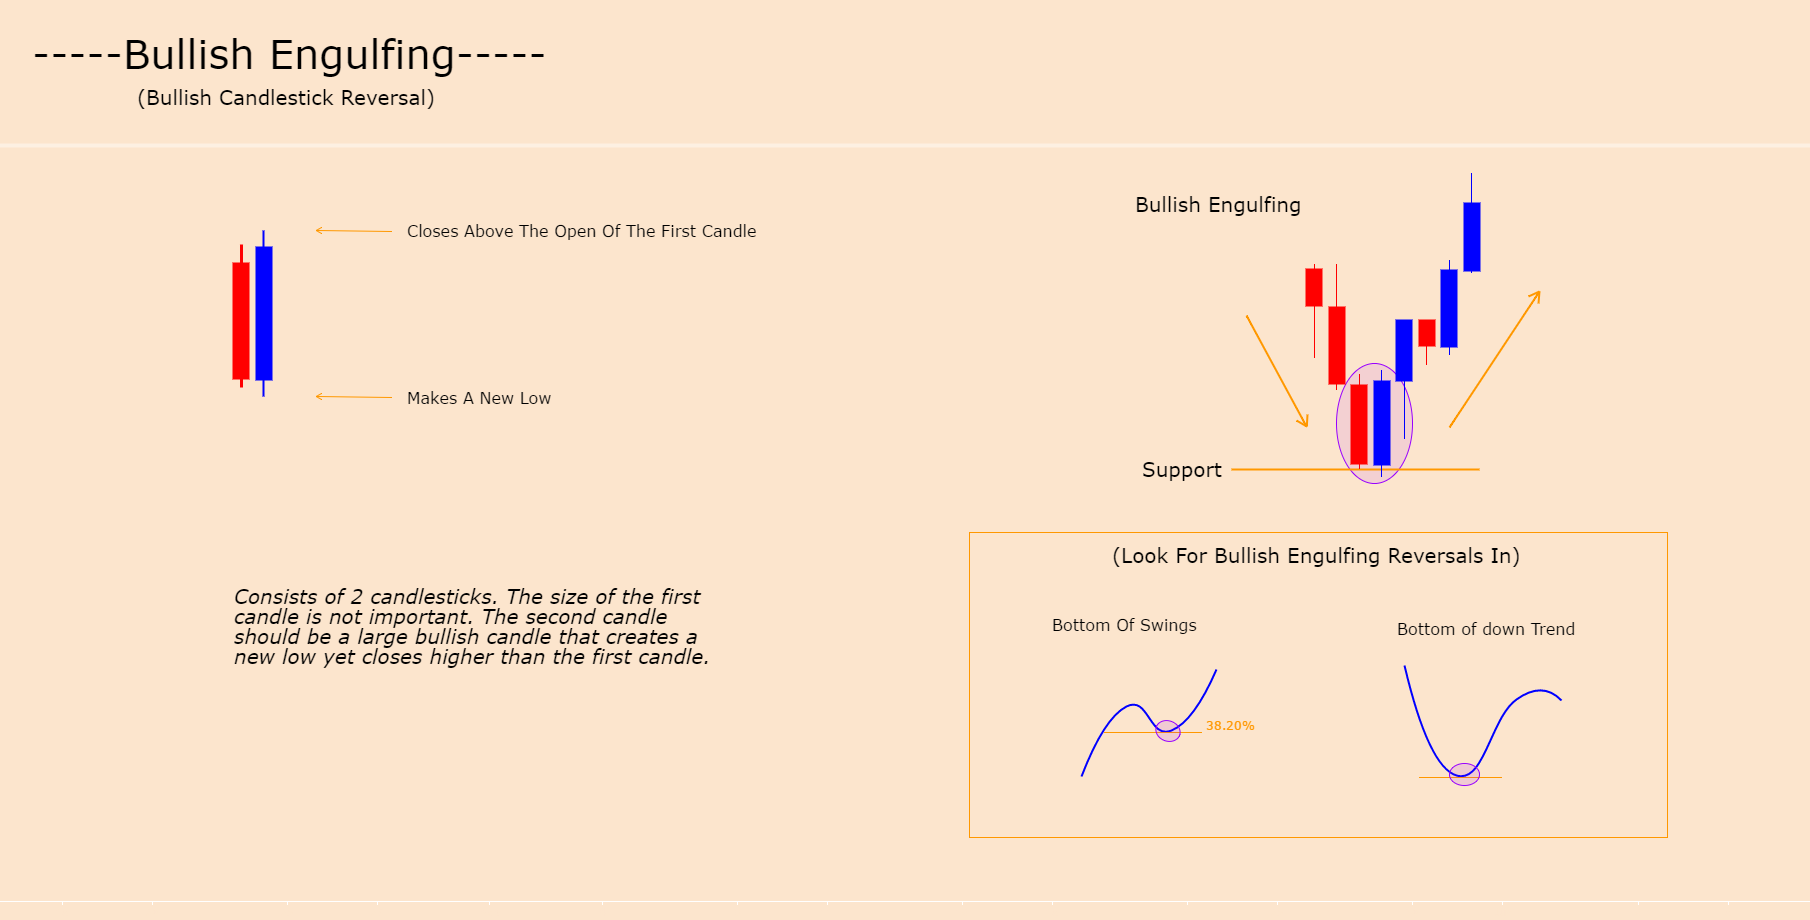 BULLISH ENGULFING - CANDLE FORMATION (BULLISH REVERSAL)